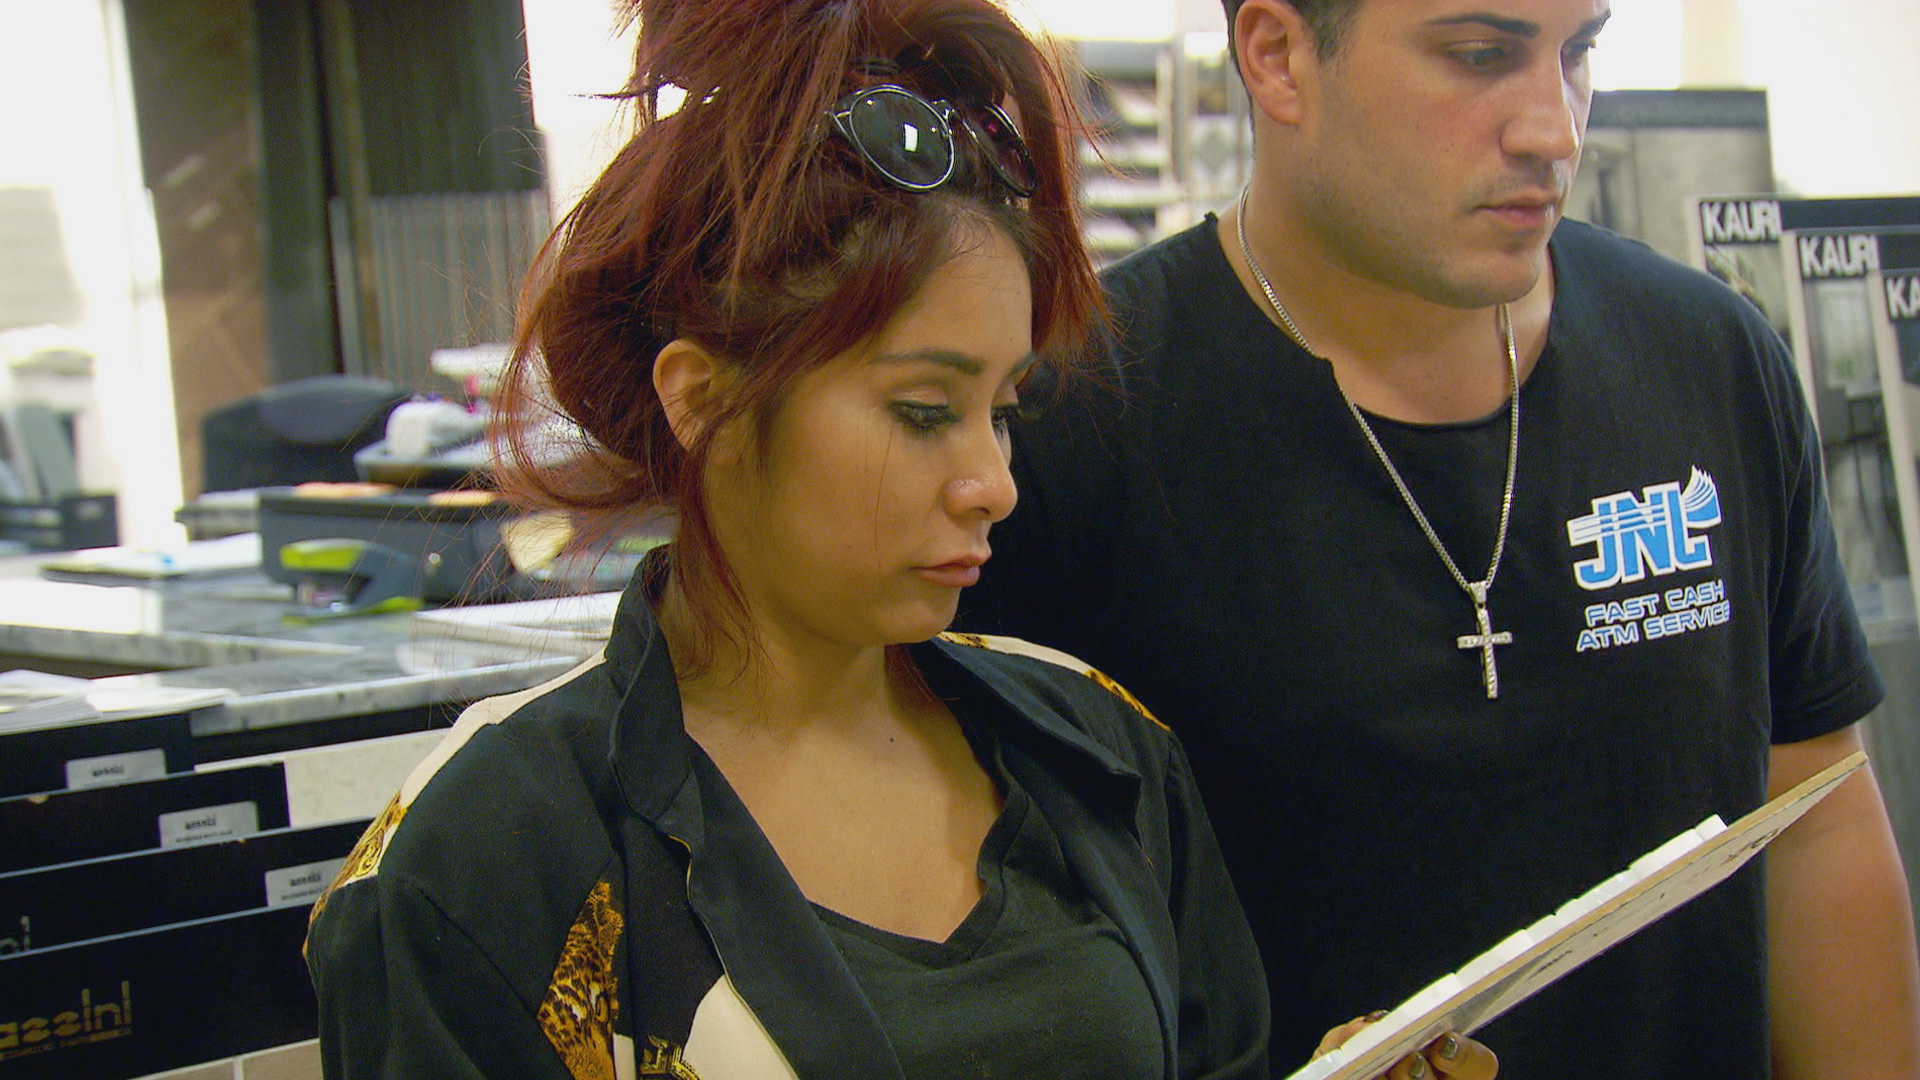 Only the Best for Snooki's Guest